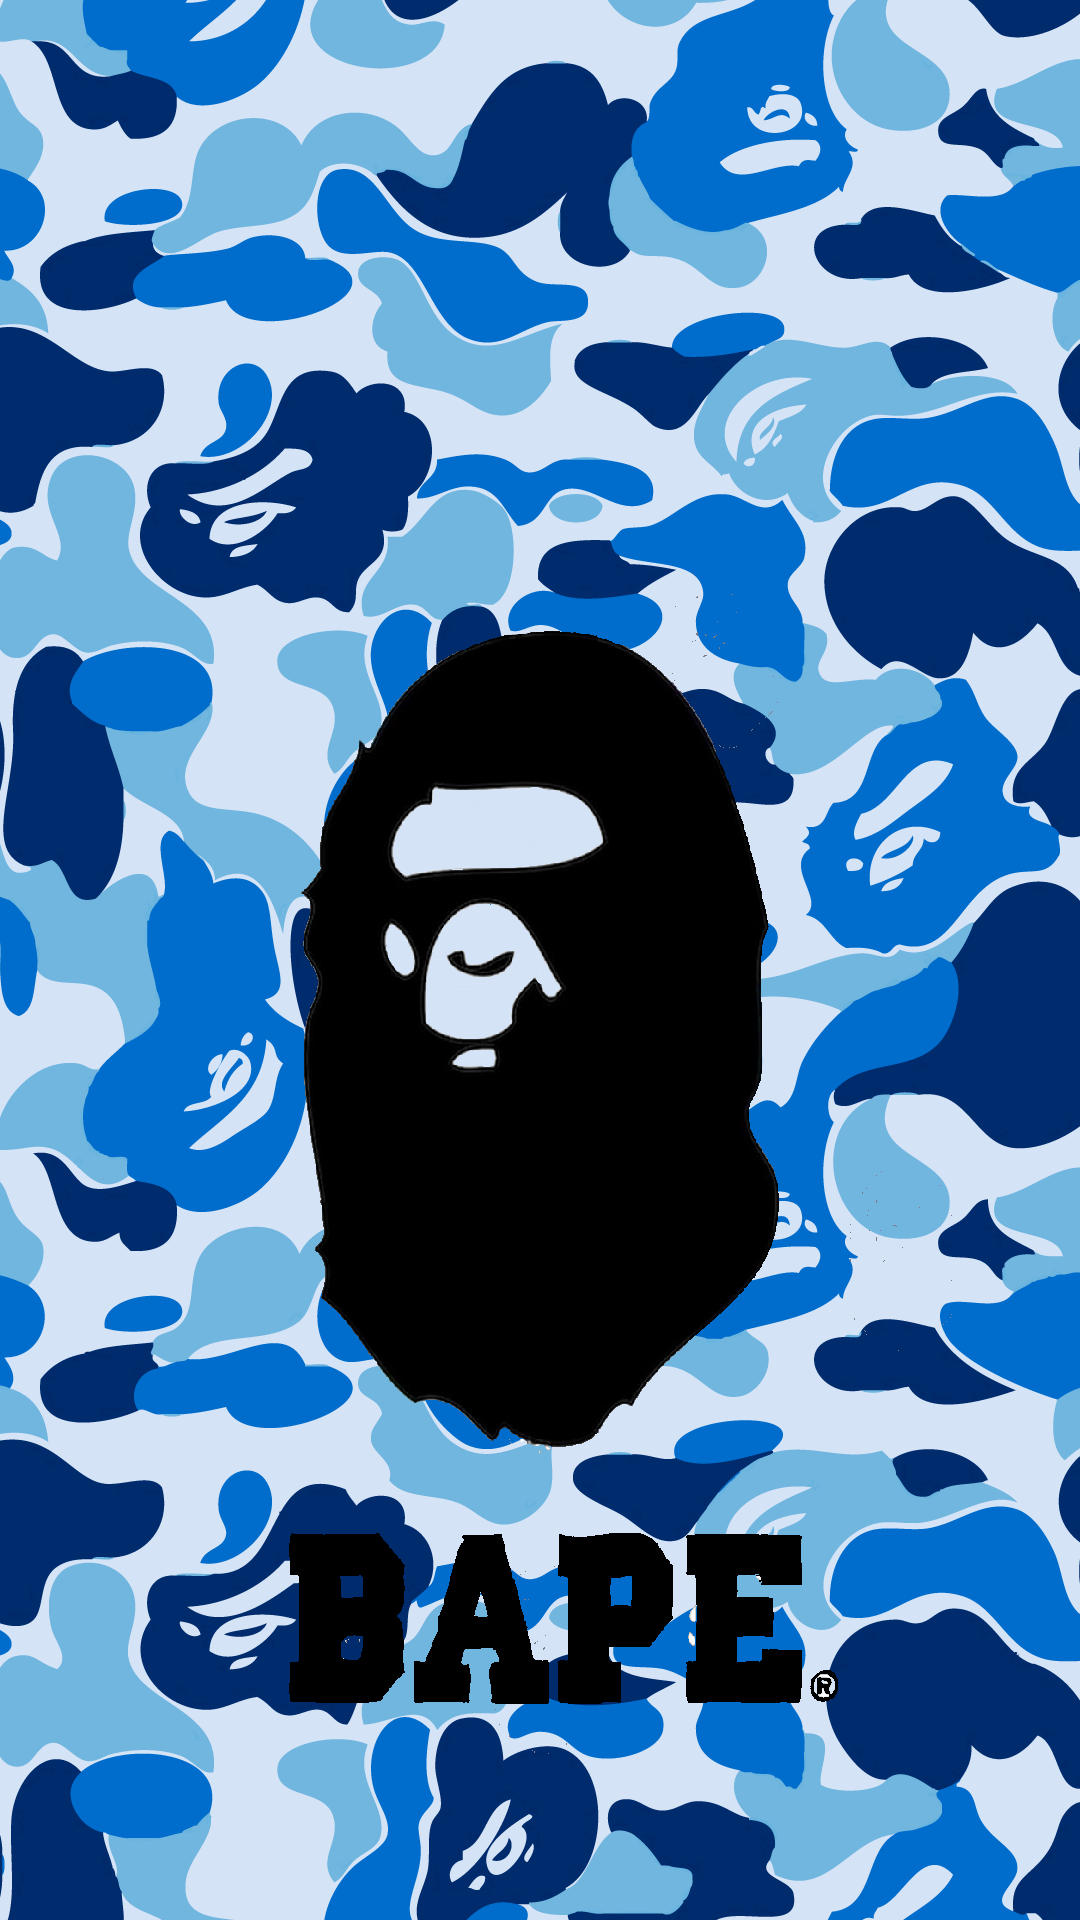 Bape Wallpaper Set Album On Imgur Bape Wallpaper Iphone Kaws Wallpaper Camo Wallpaper